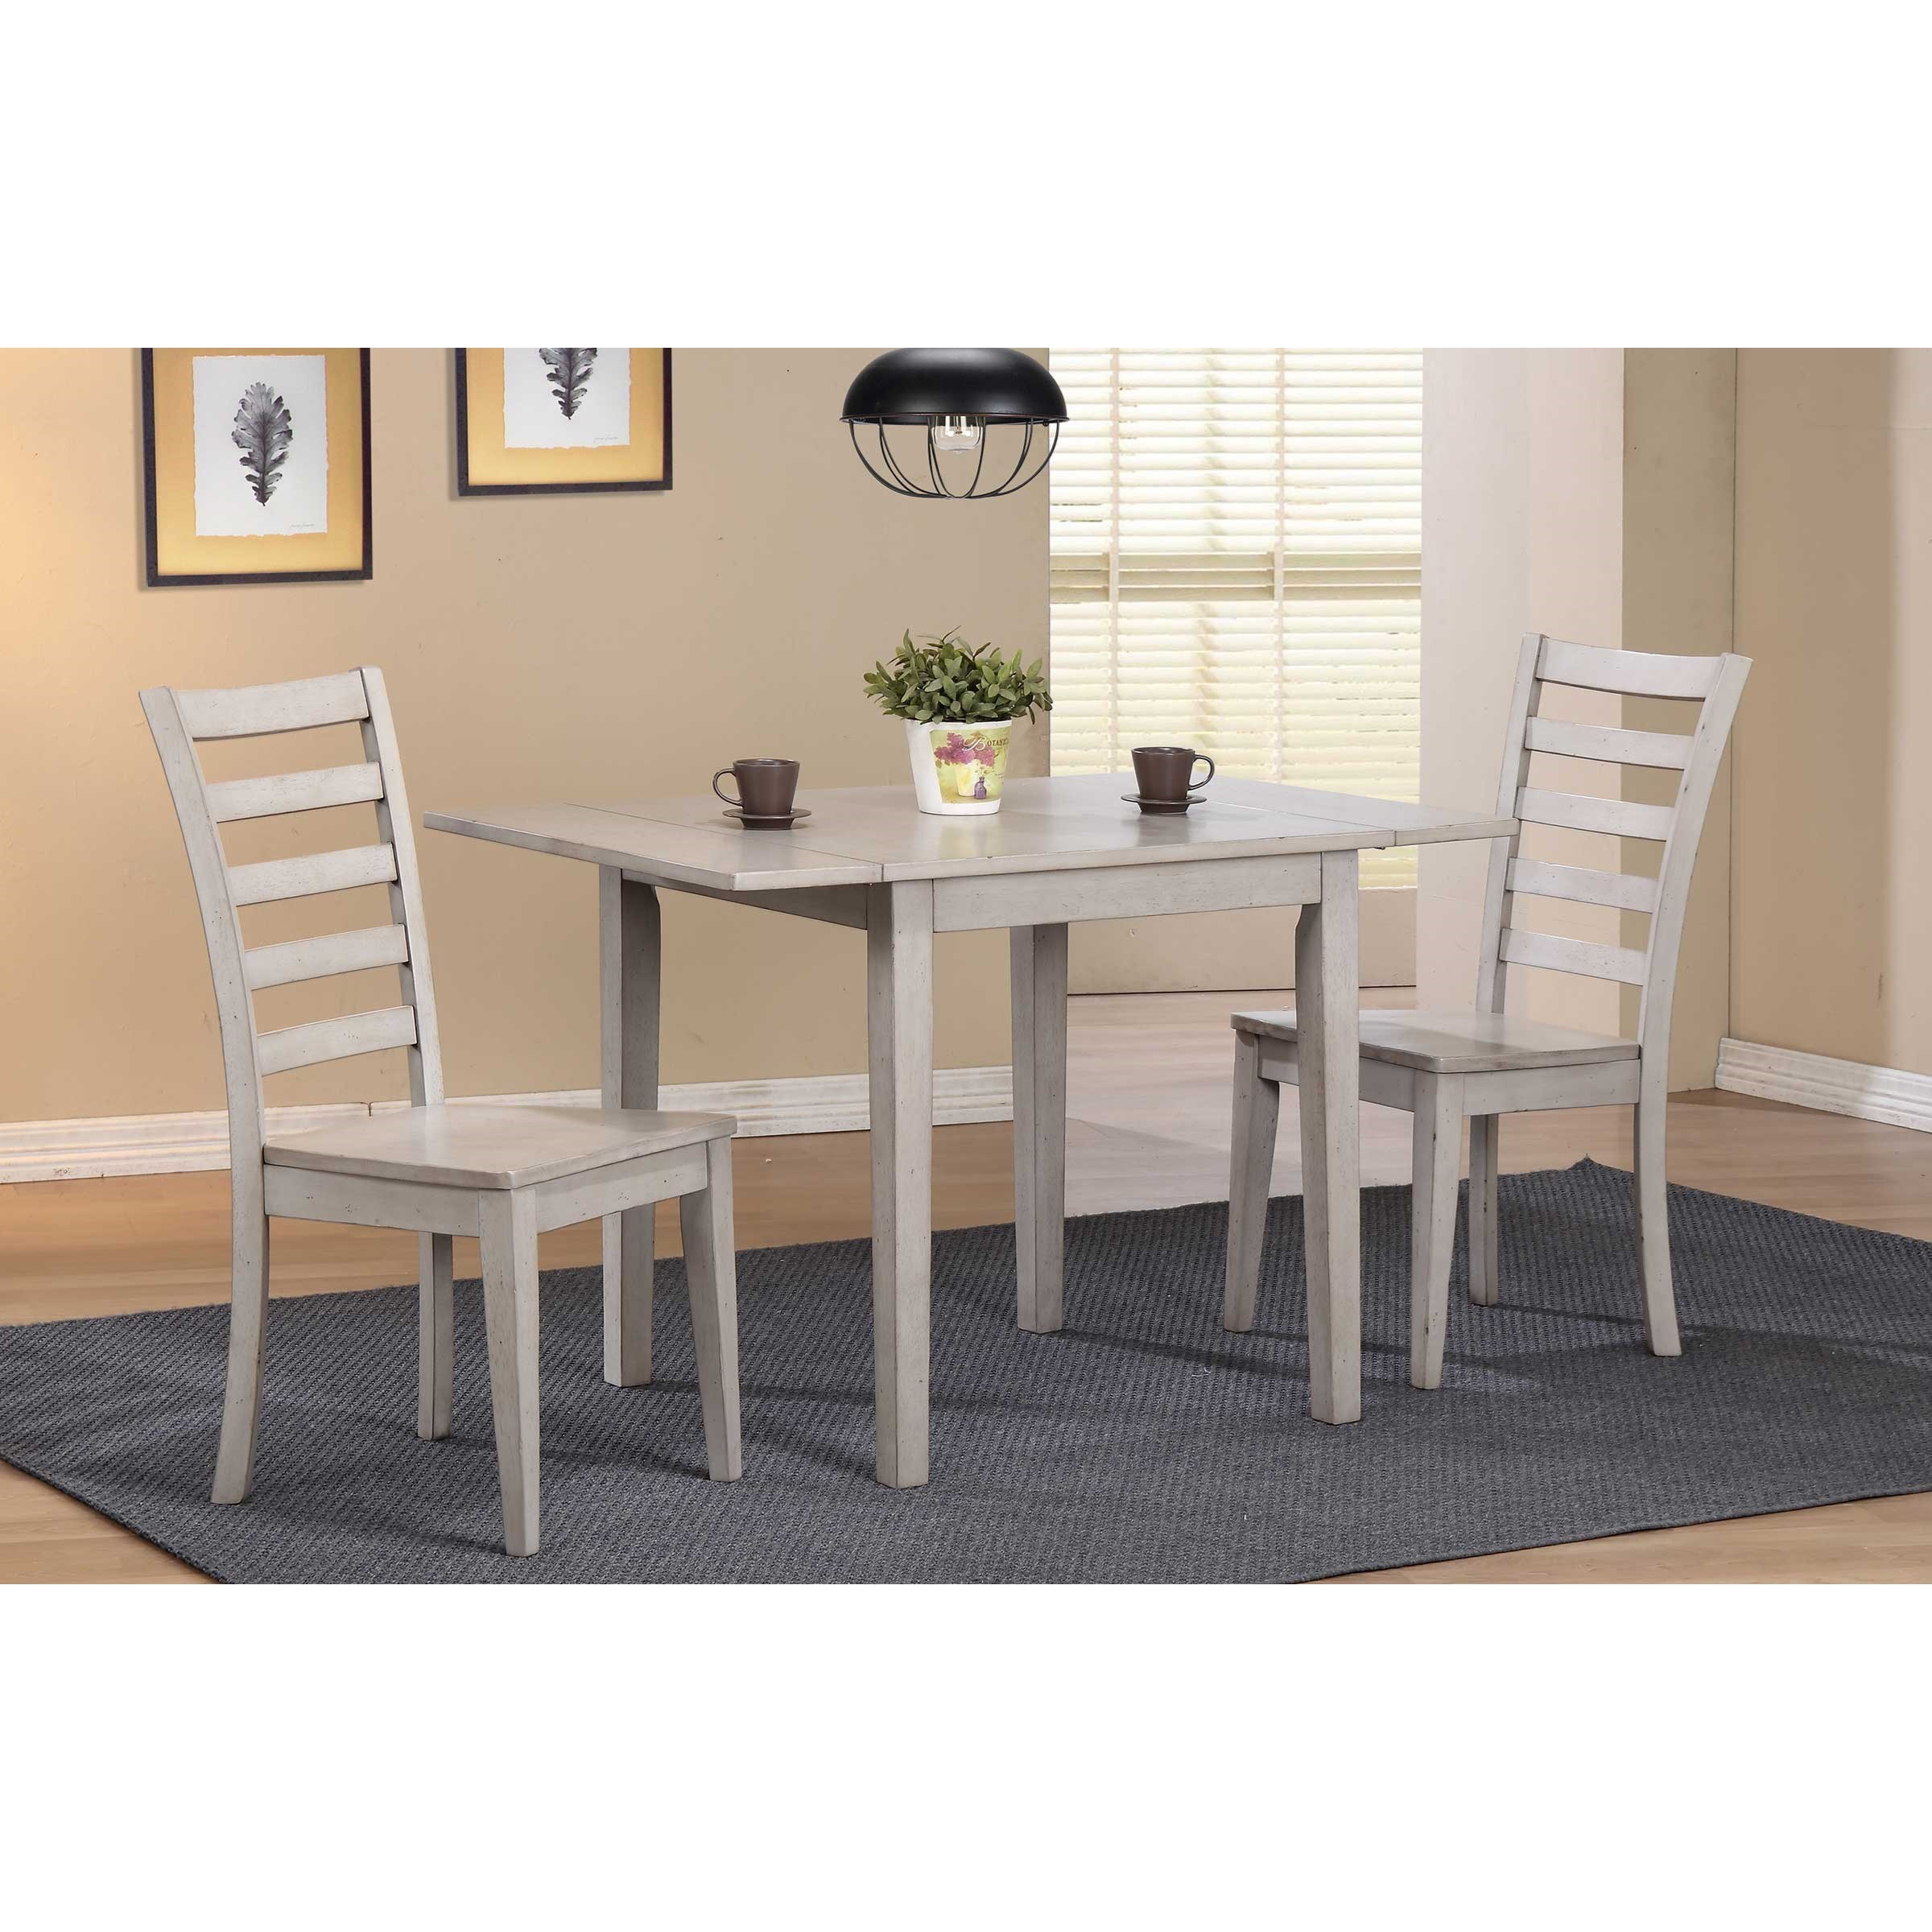 Carmel Dining Set by Winners Only at Crowley Furniture & Mattress